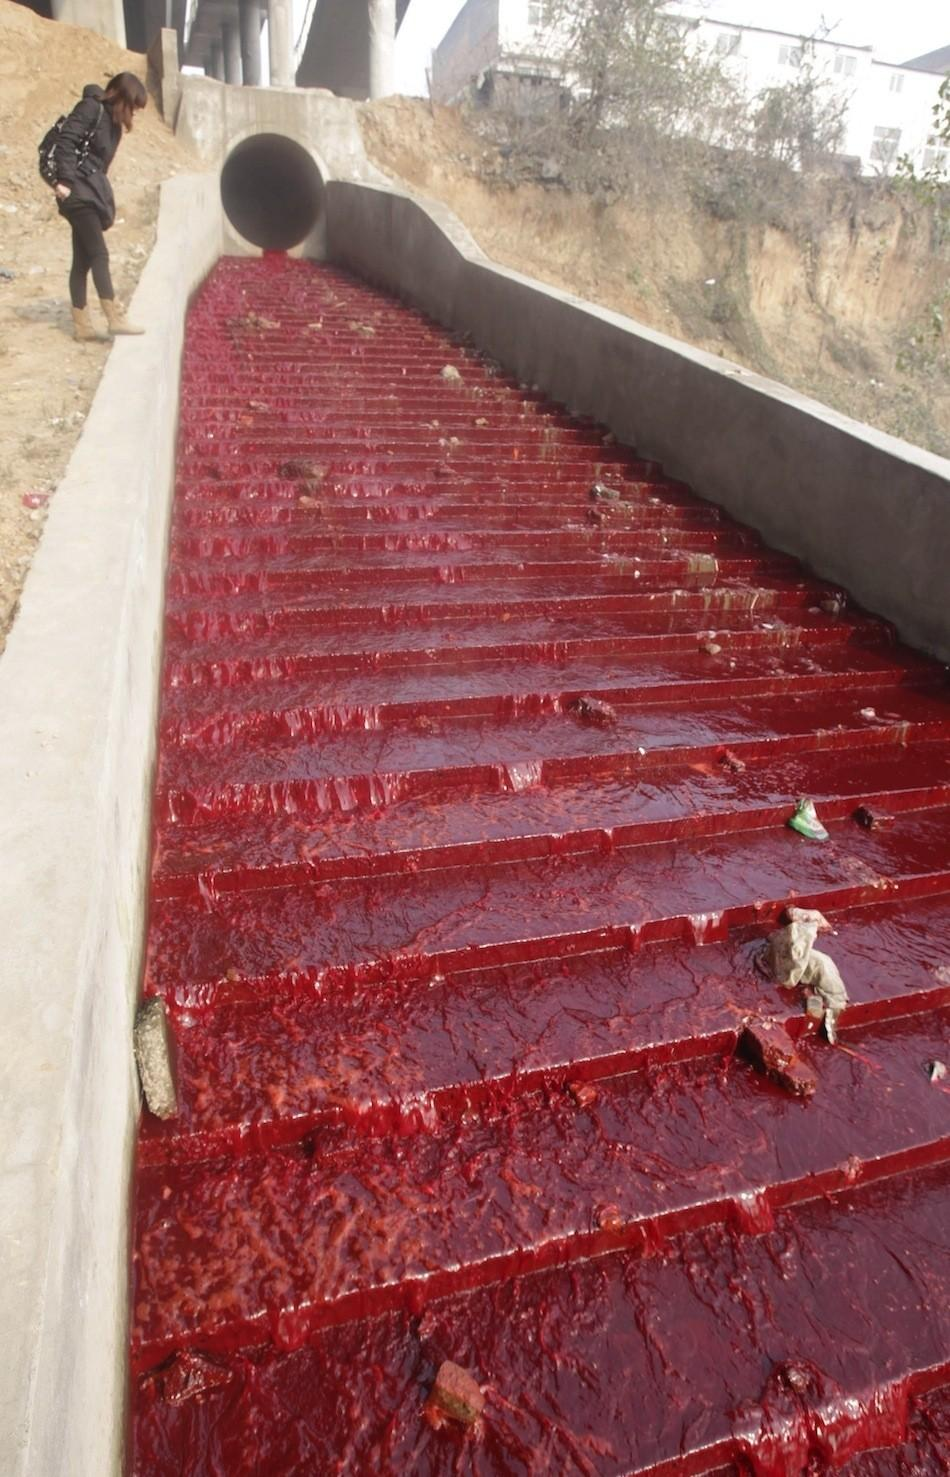 China's River of Blood